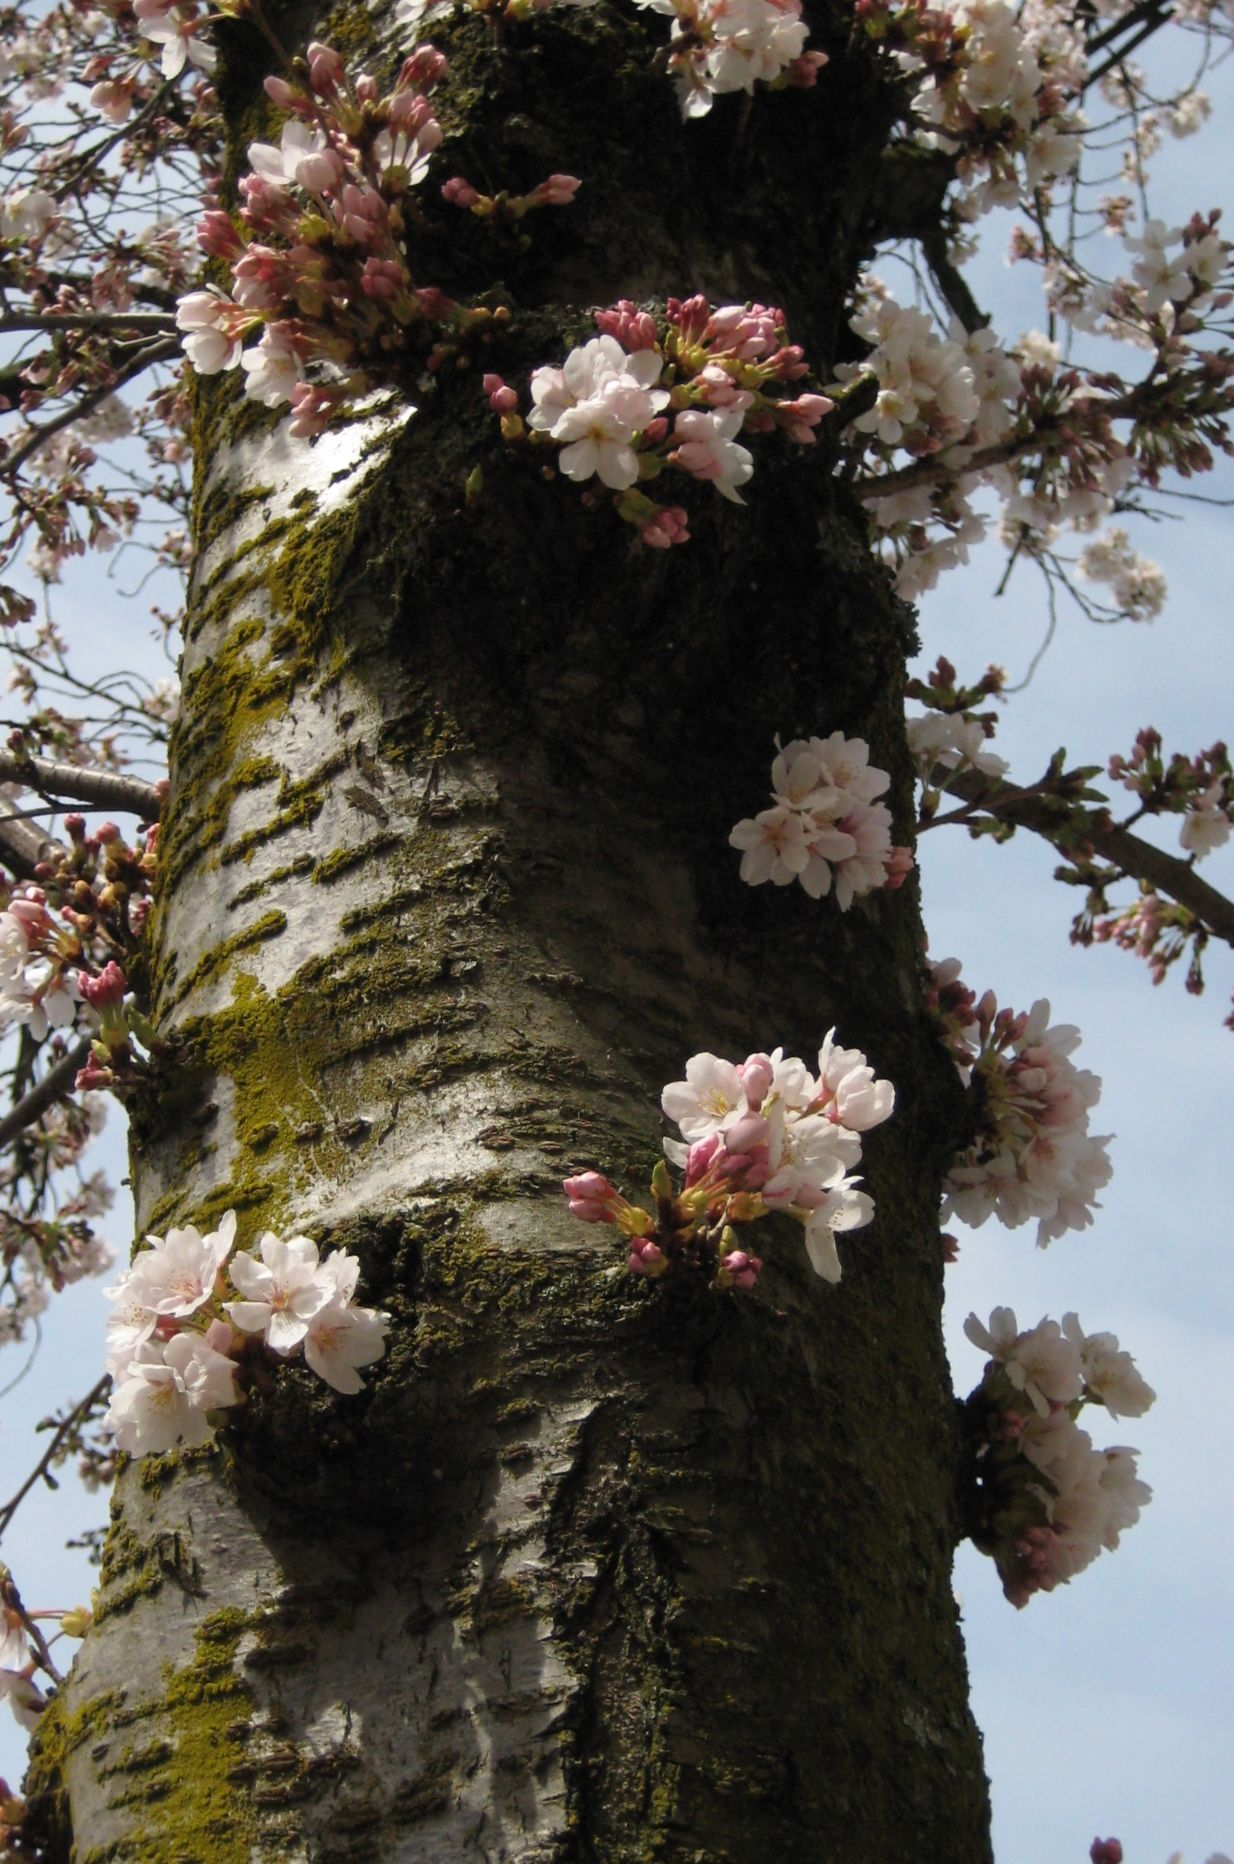 Cherry Blossoms Mean Spring Cherry Blossom Meaning Rare Flowers Tree Hugger